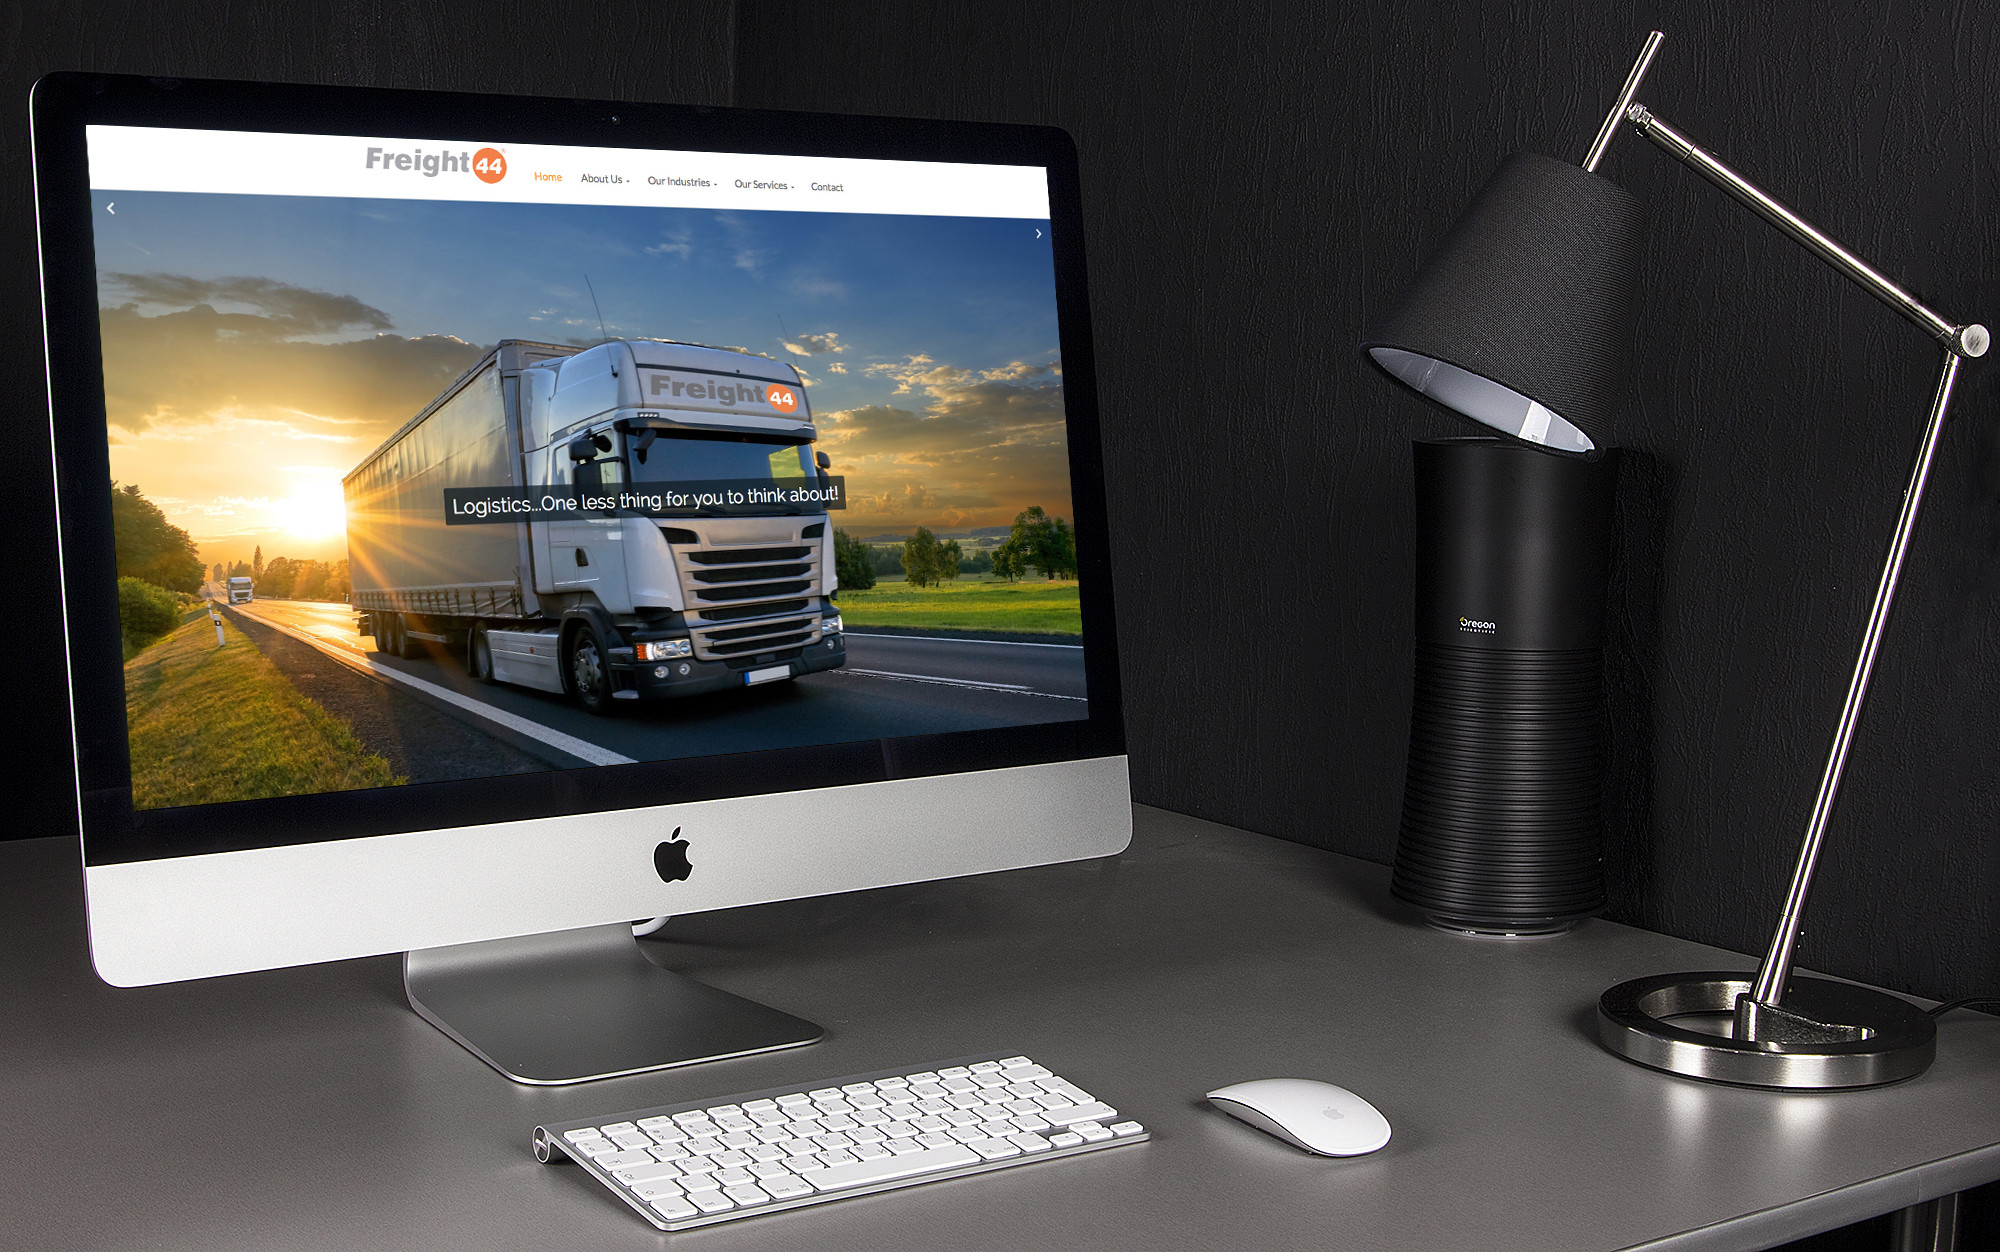 A desk with an iMac on it with the home page of the Freight 44 website open on it.